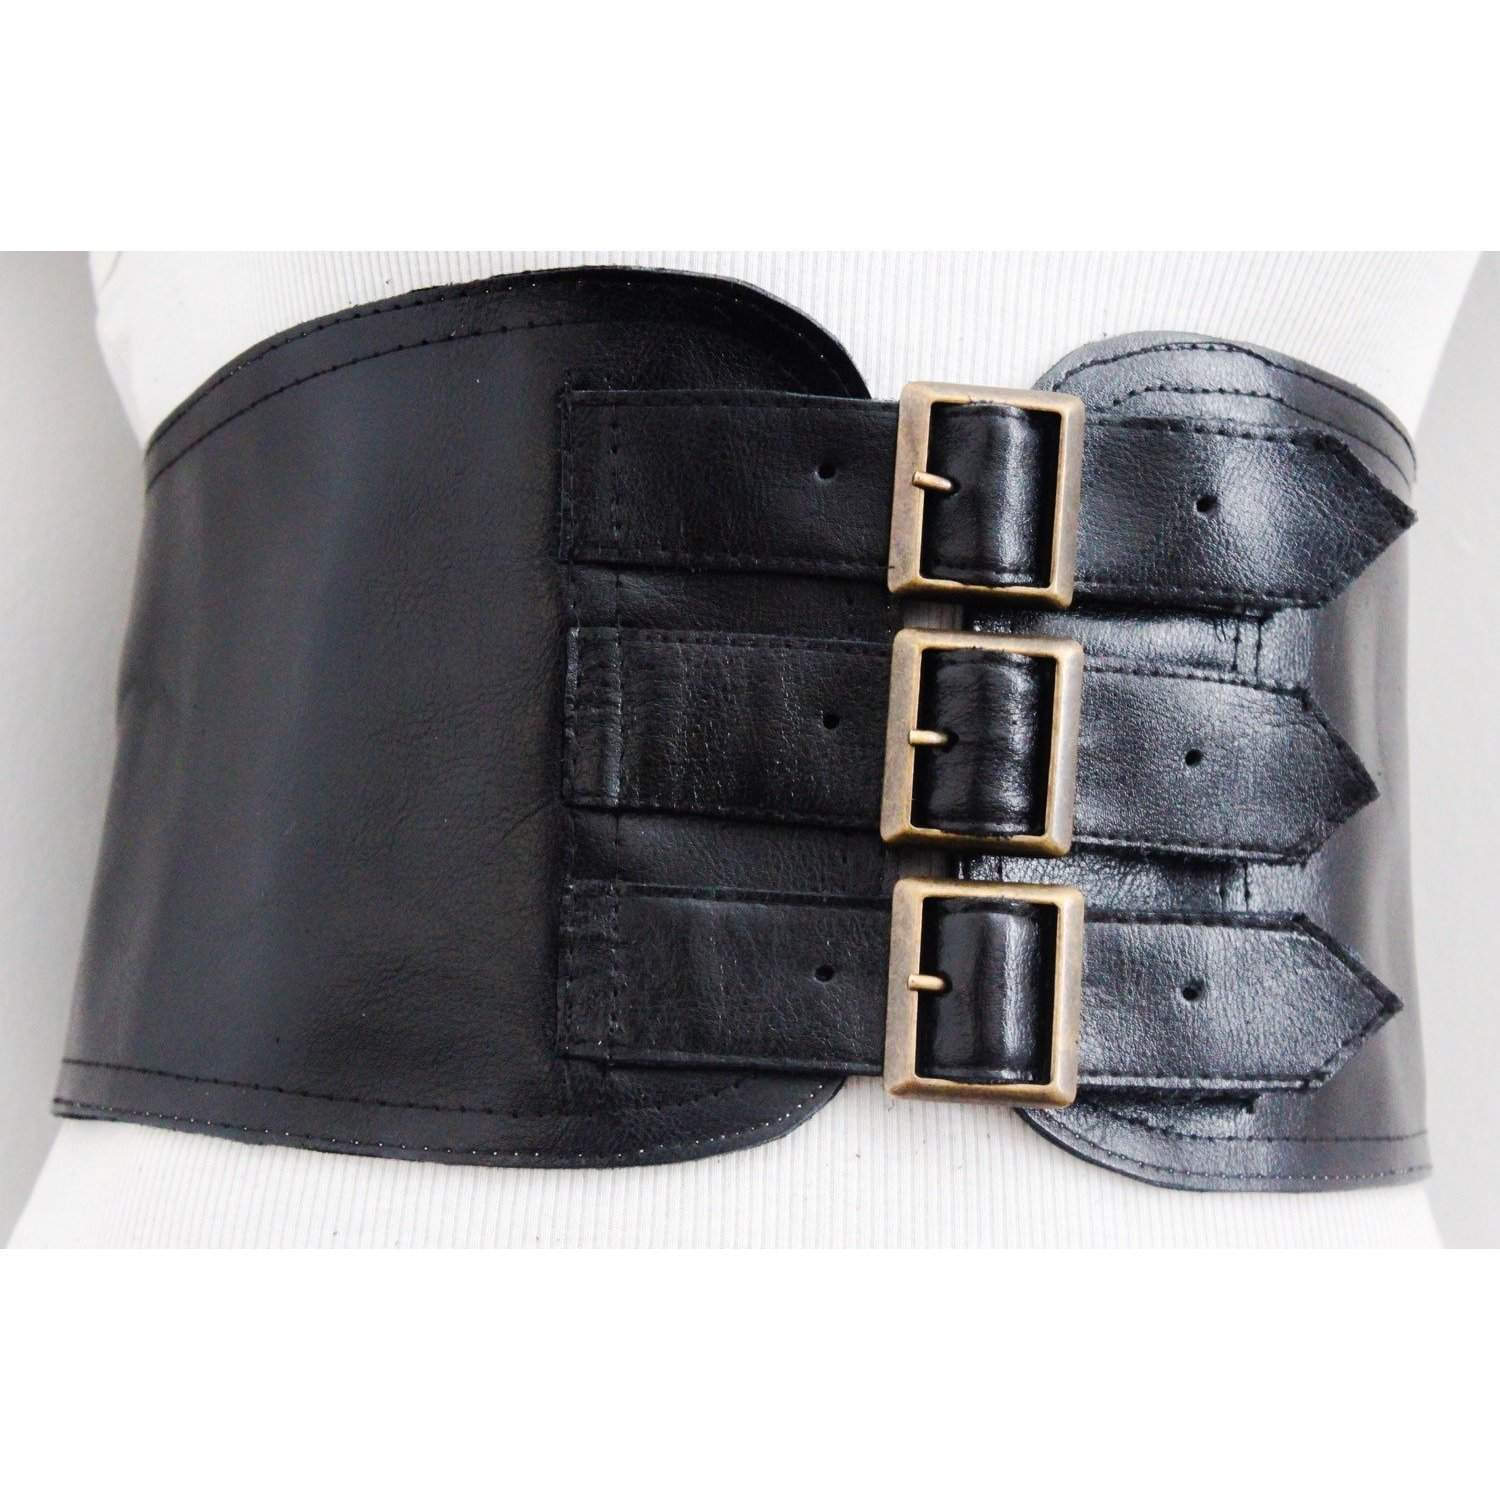 Black Corset Leather Three Buckle Belt - loveyaayaa